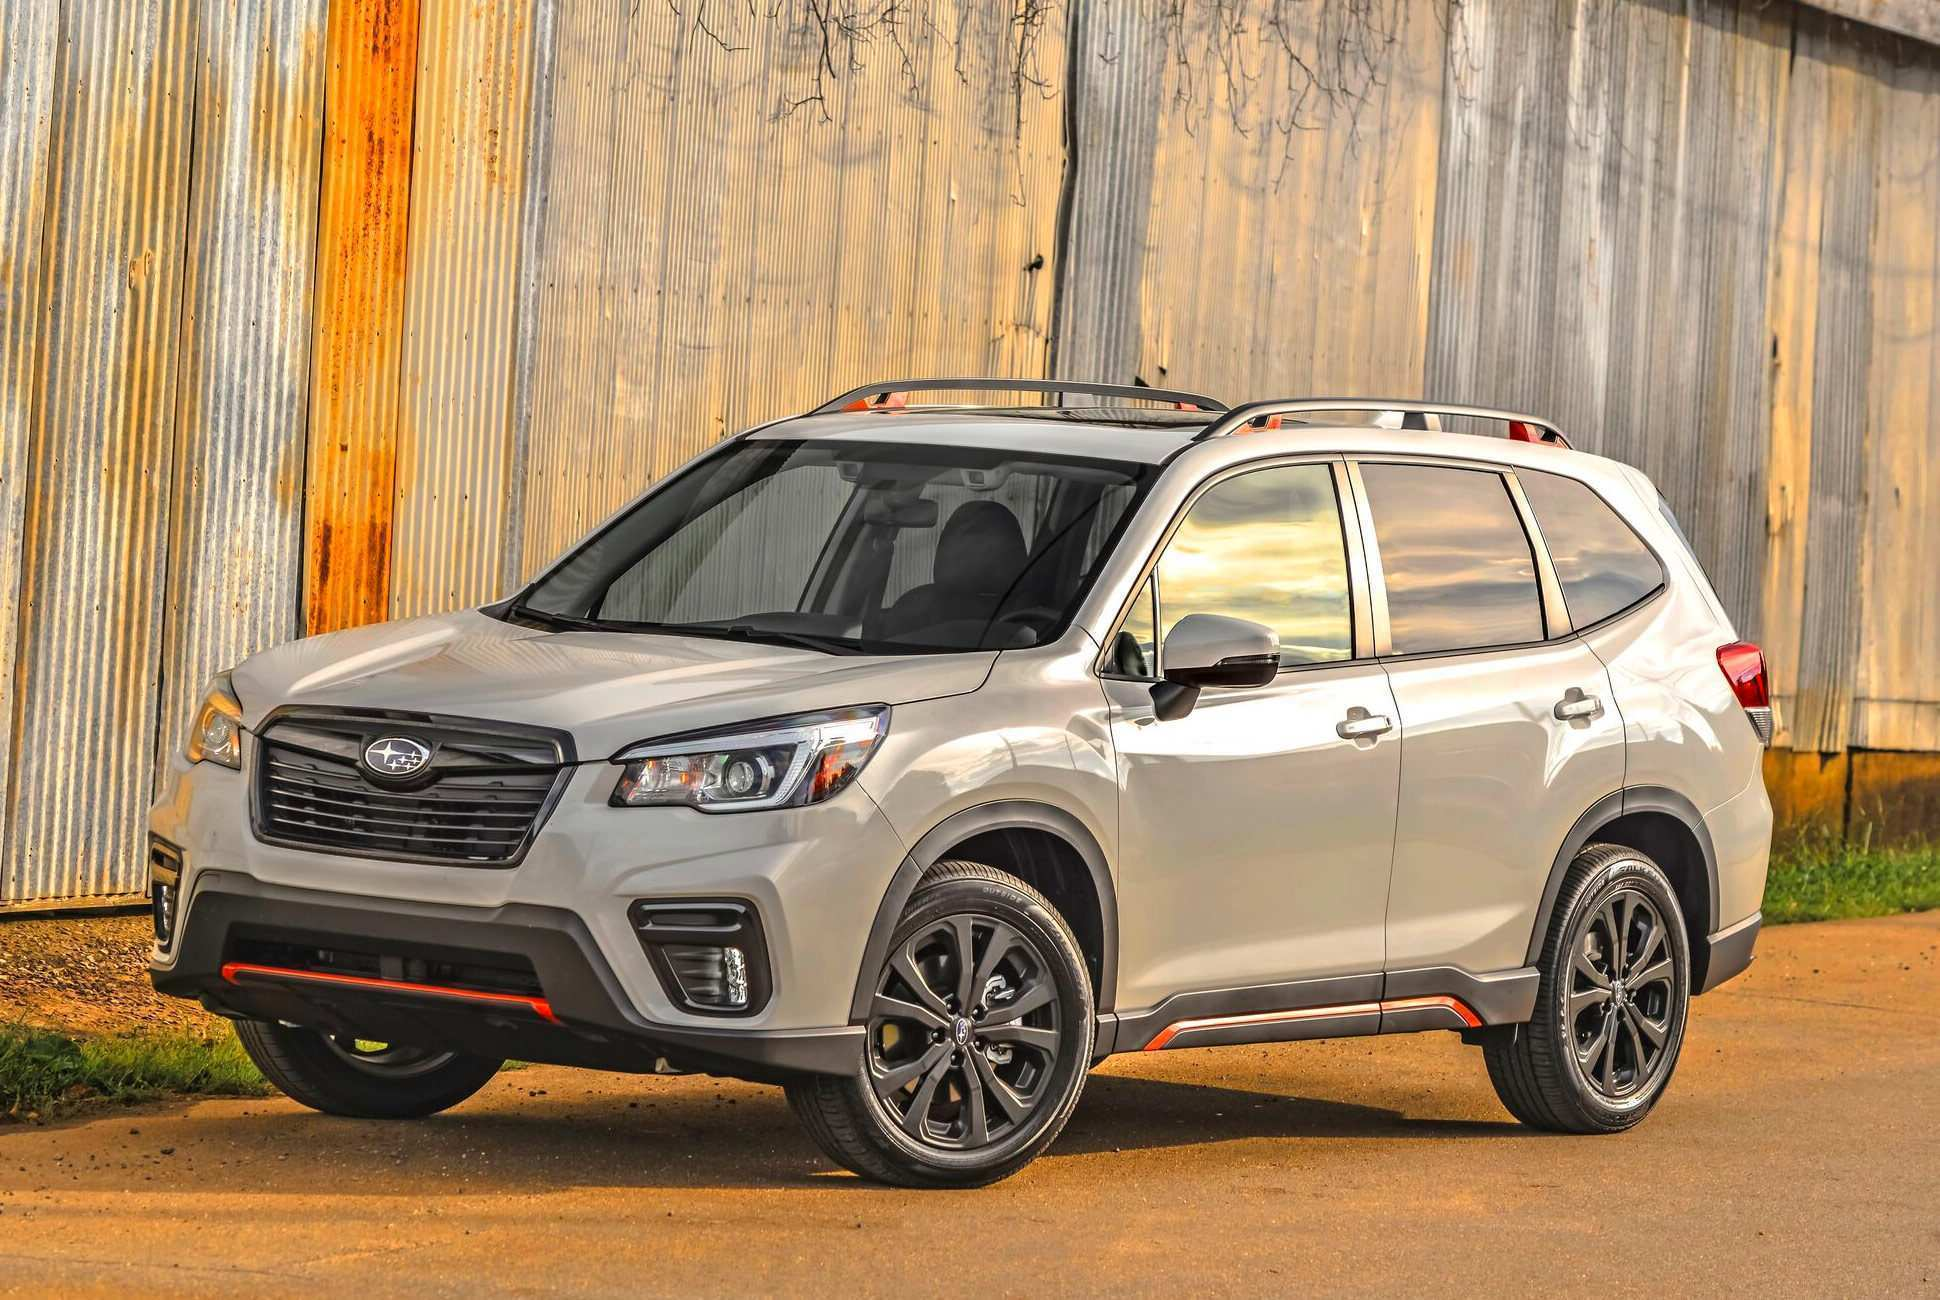 17 All New Subaru Forester 2019 Gas Mileage Research New